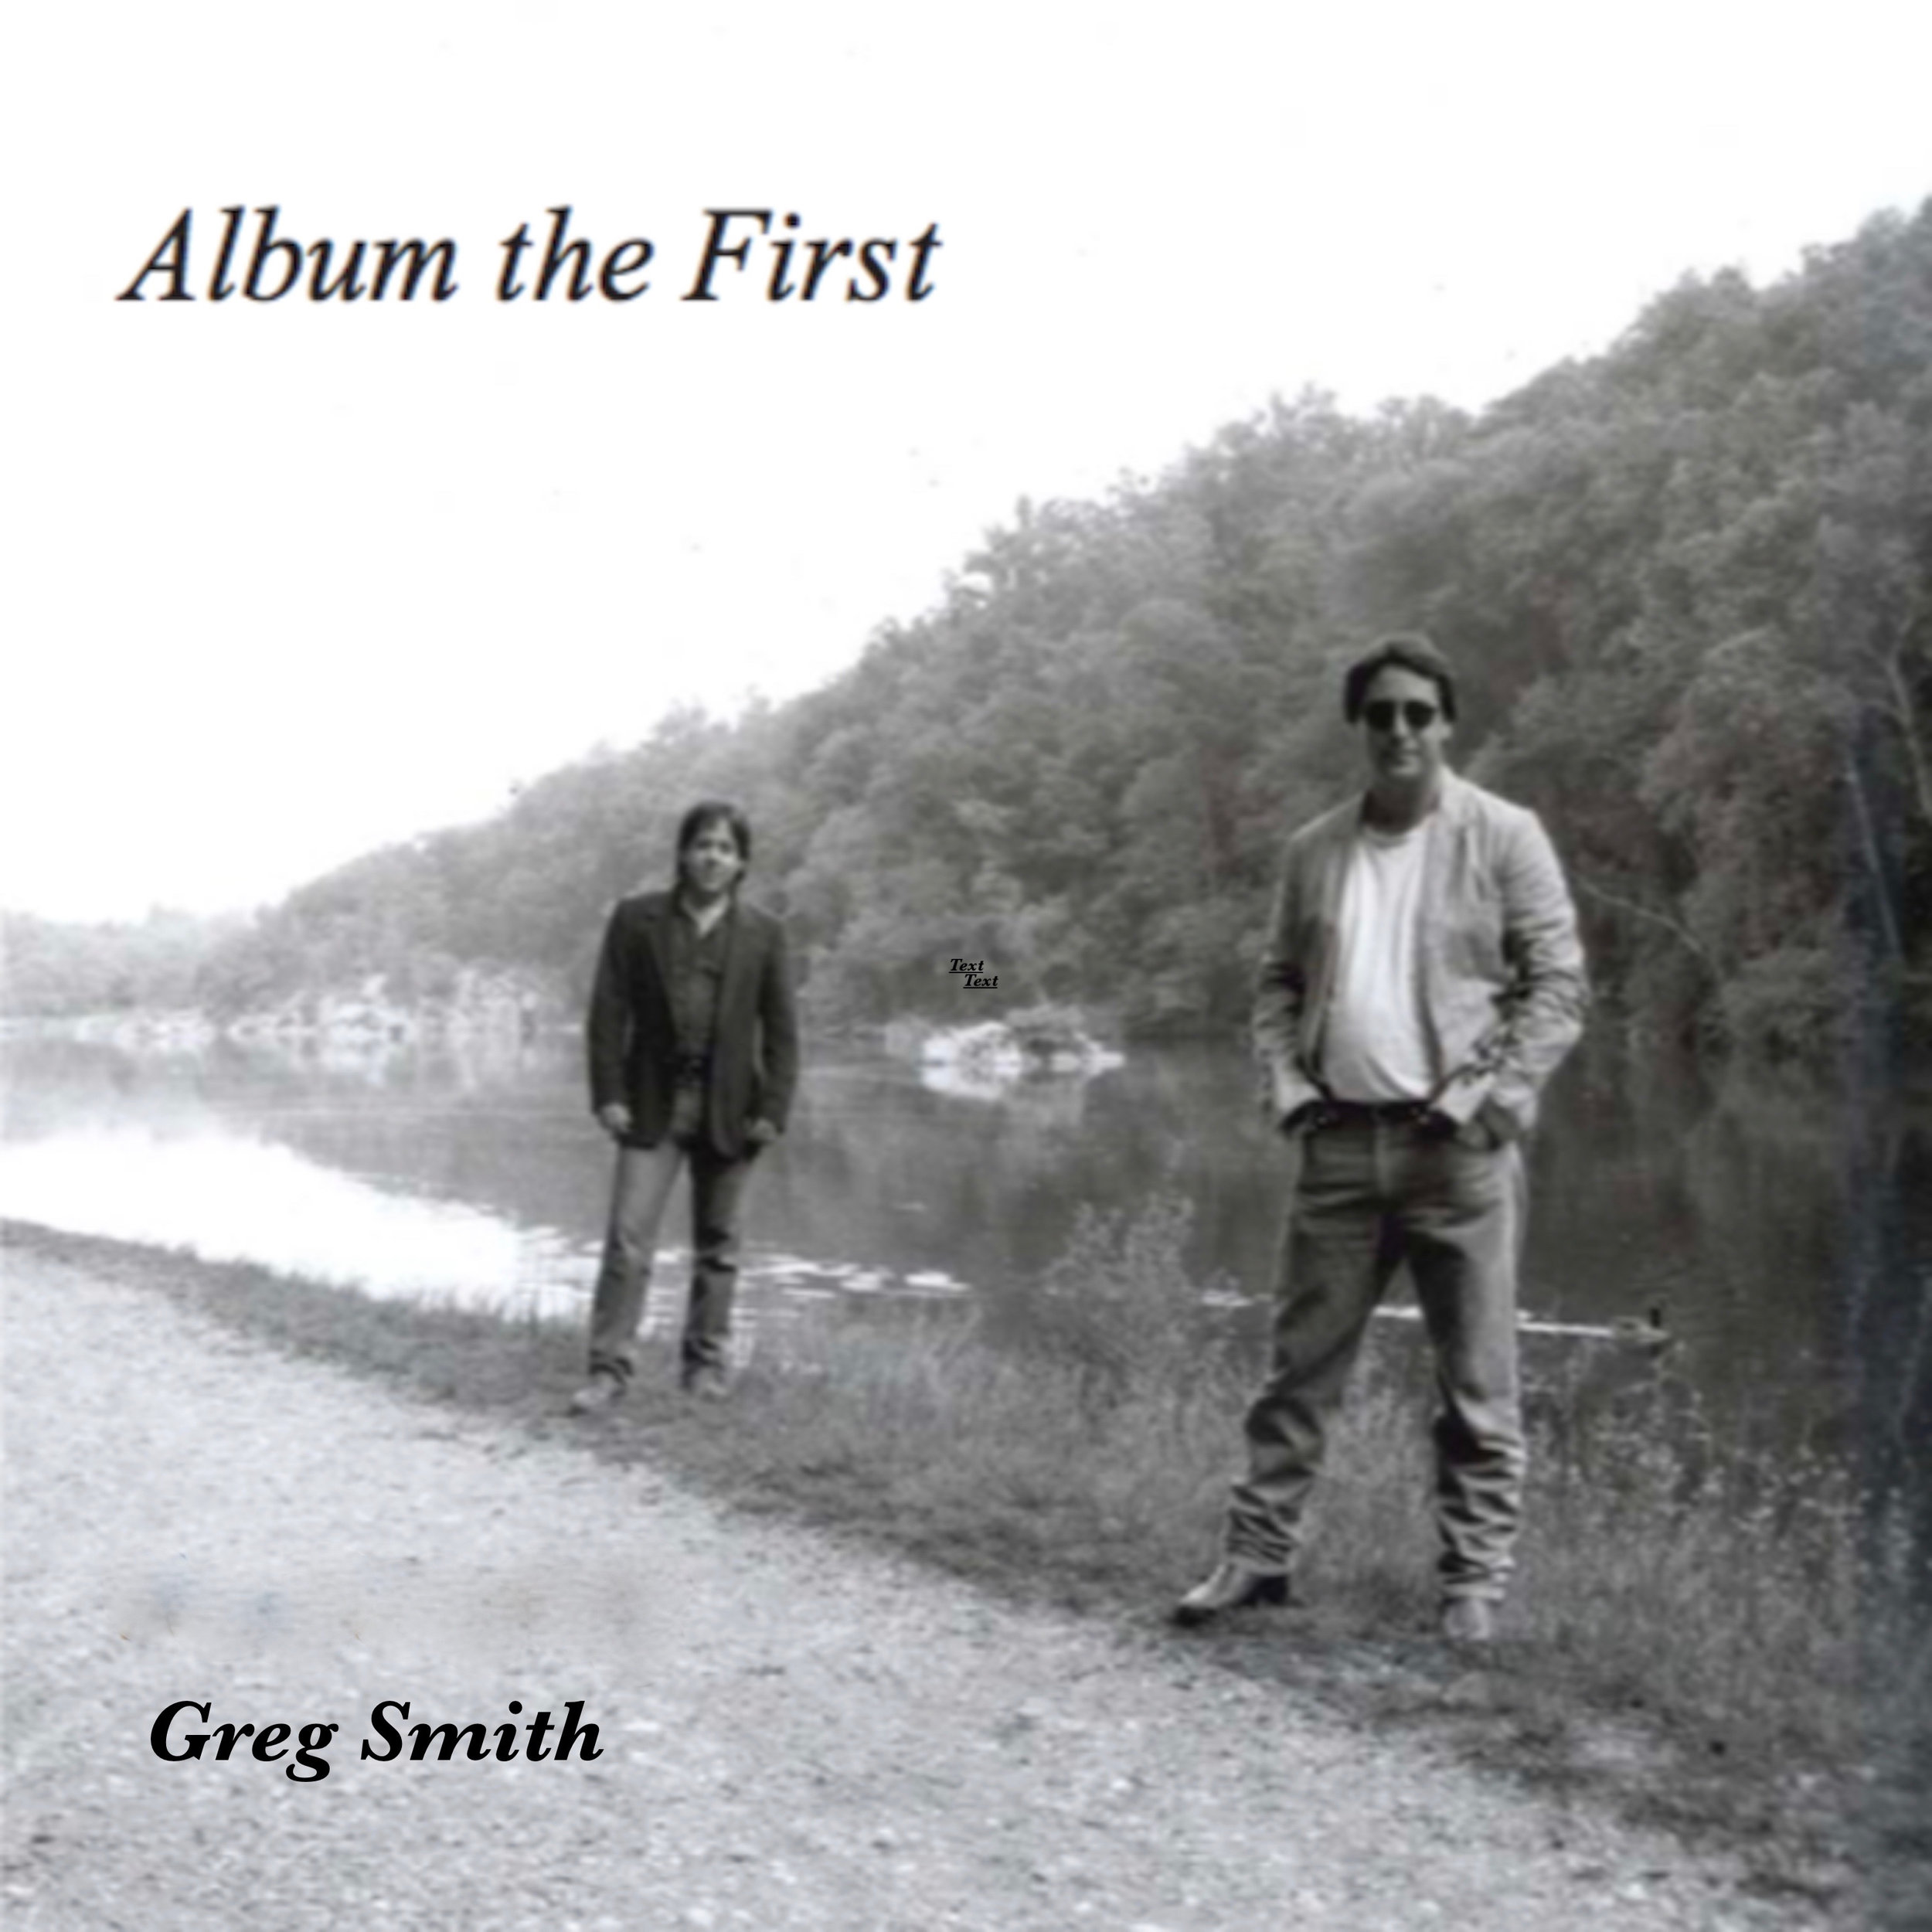 GregSmith_Album the First cover art_PUBLISHER.jpg